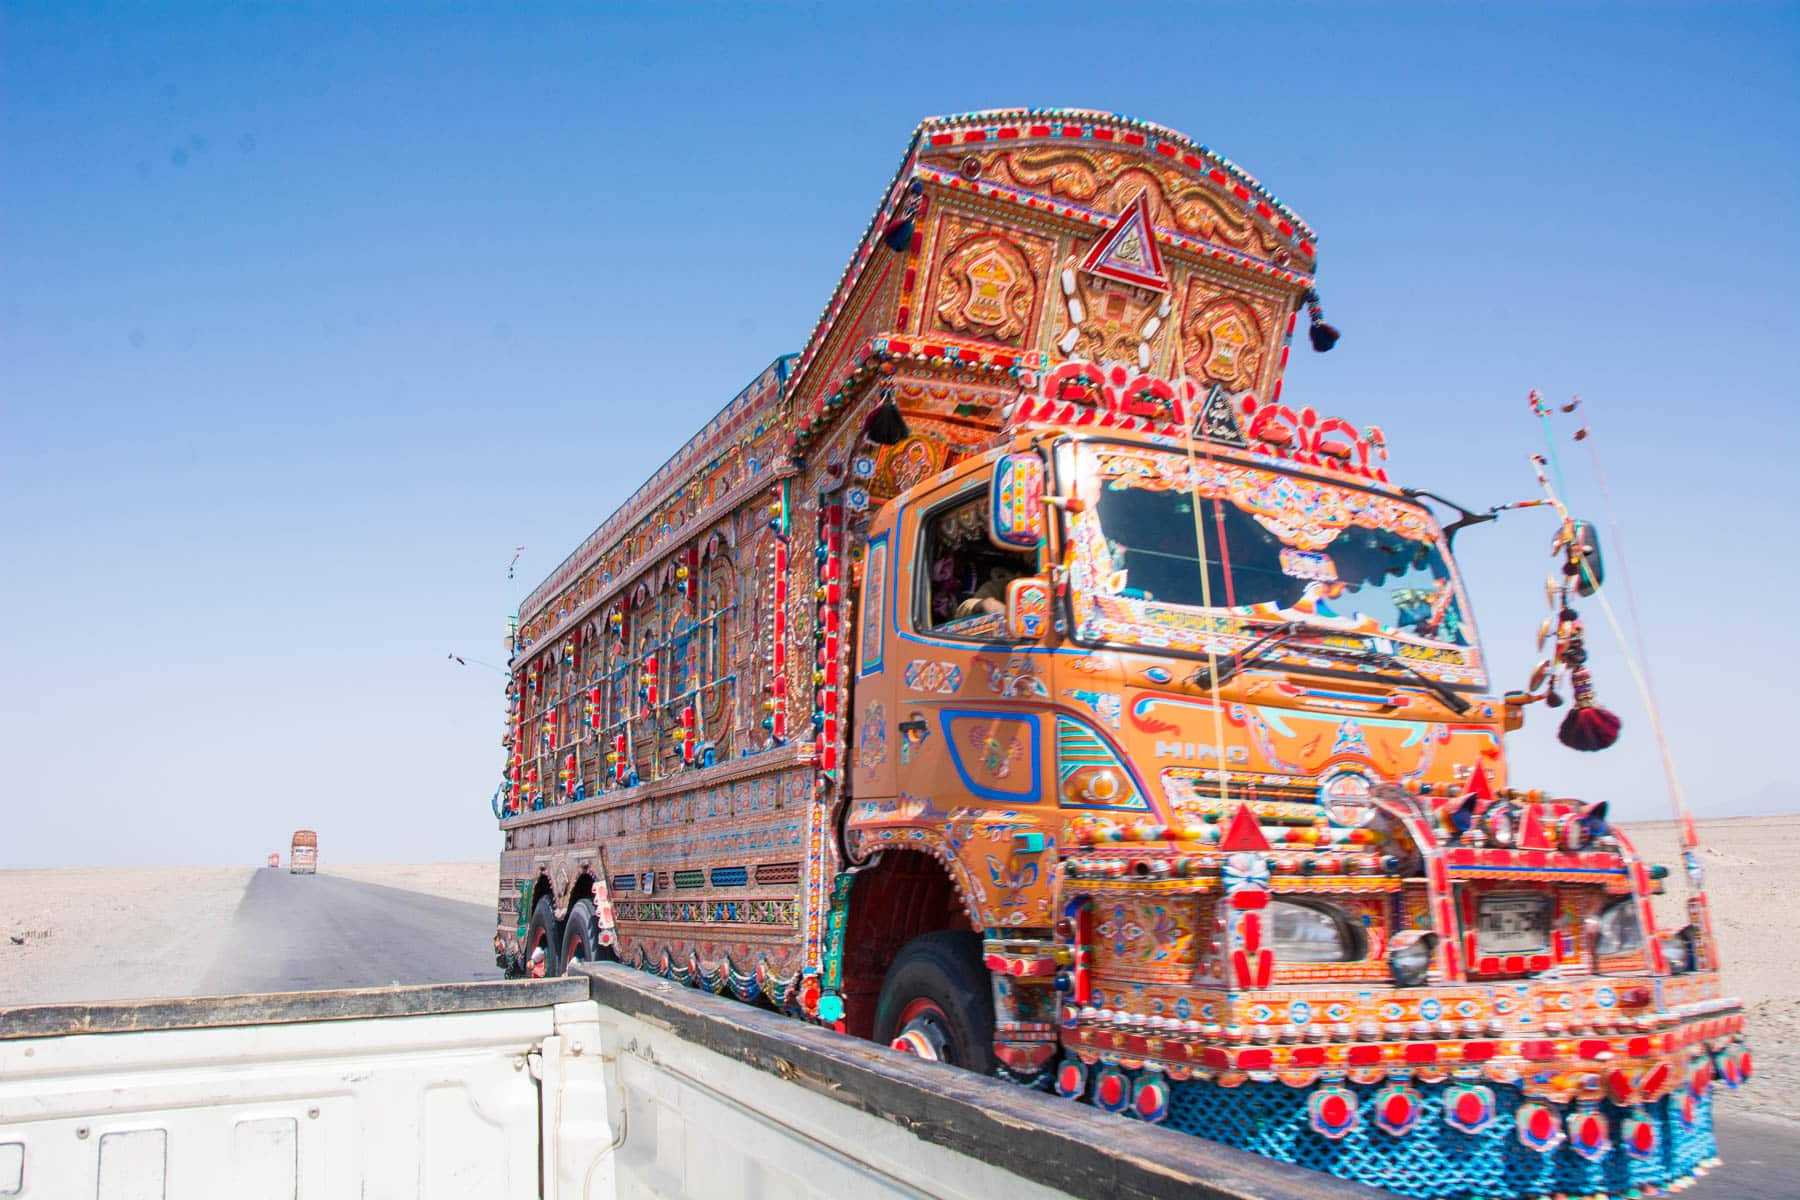 Pakistan bucket list - Truck art in Balochistan - Lost With Purpose travel blog